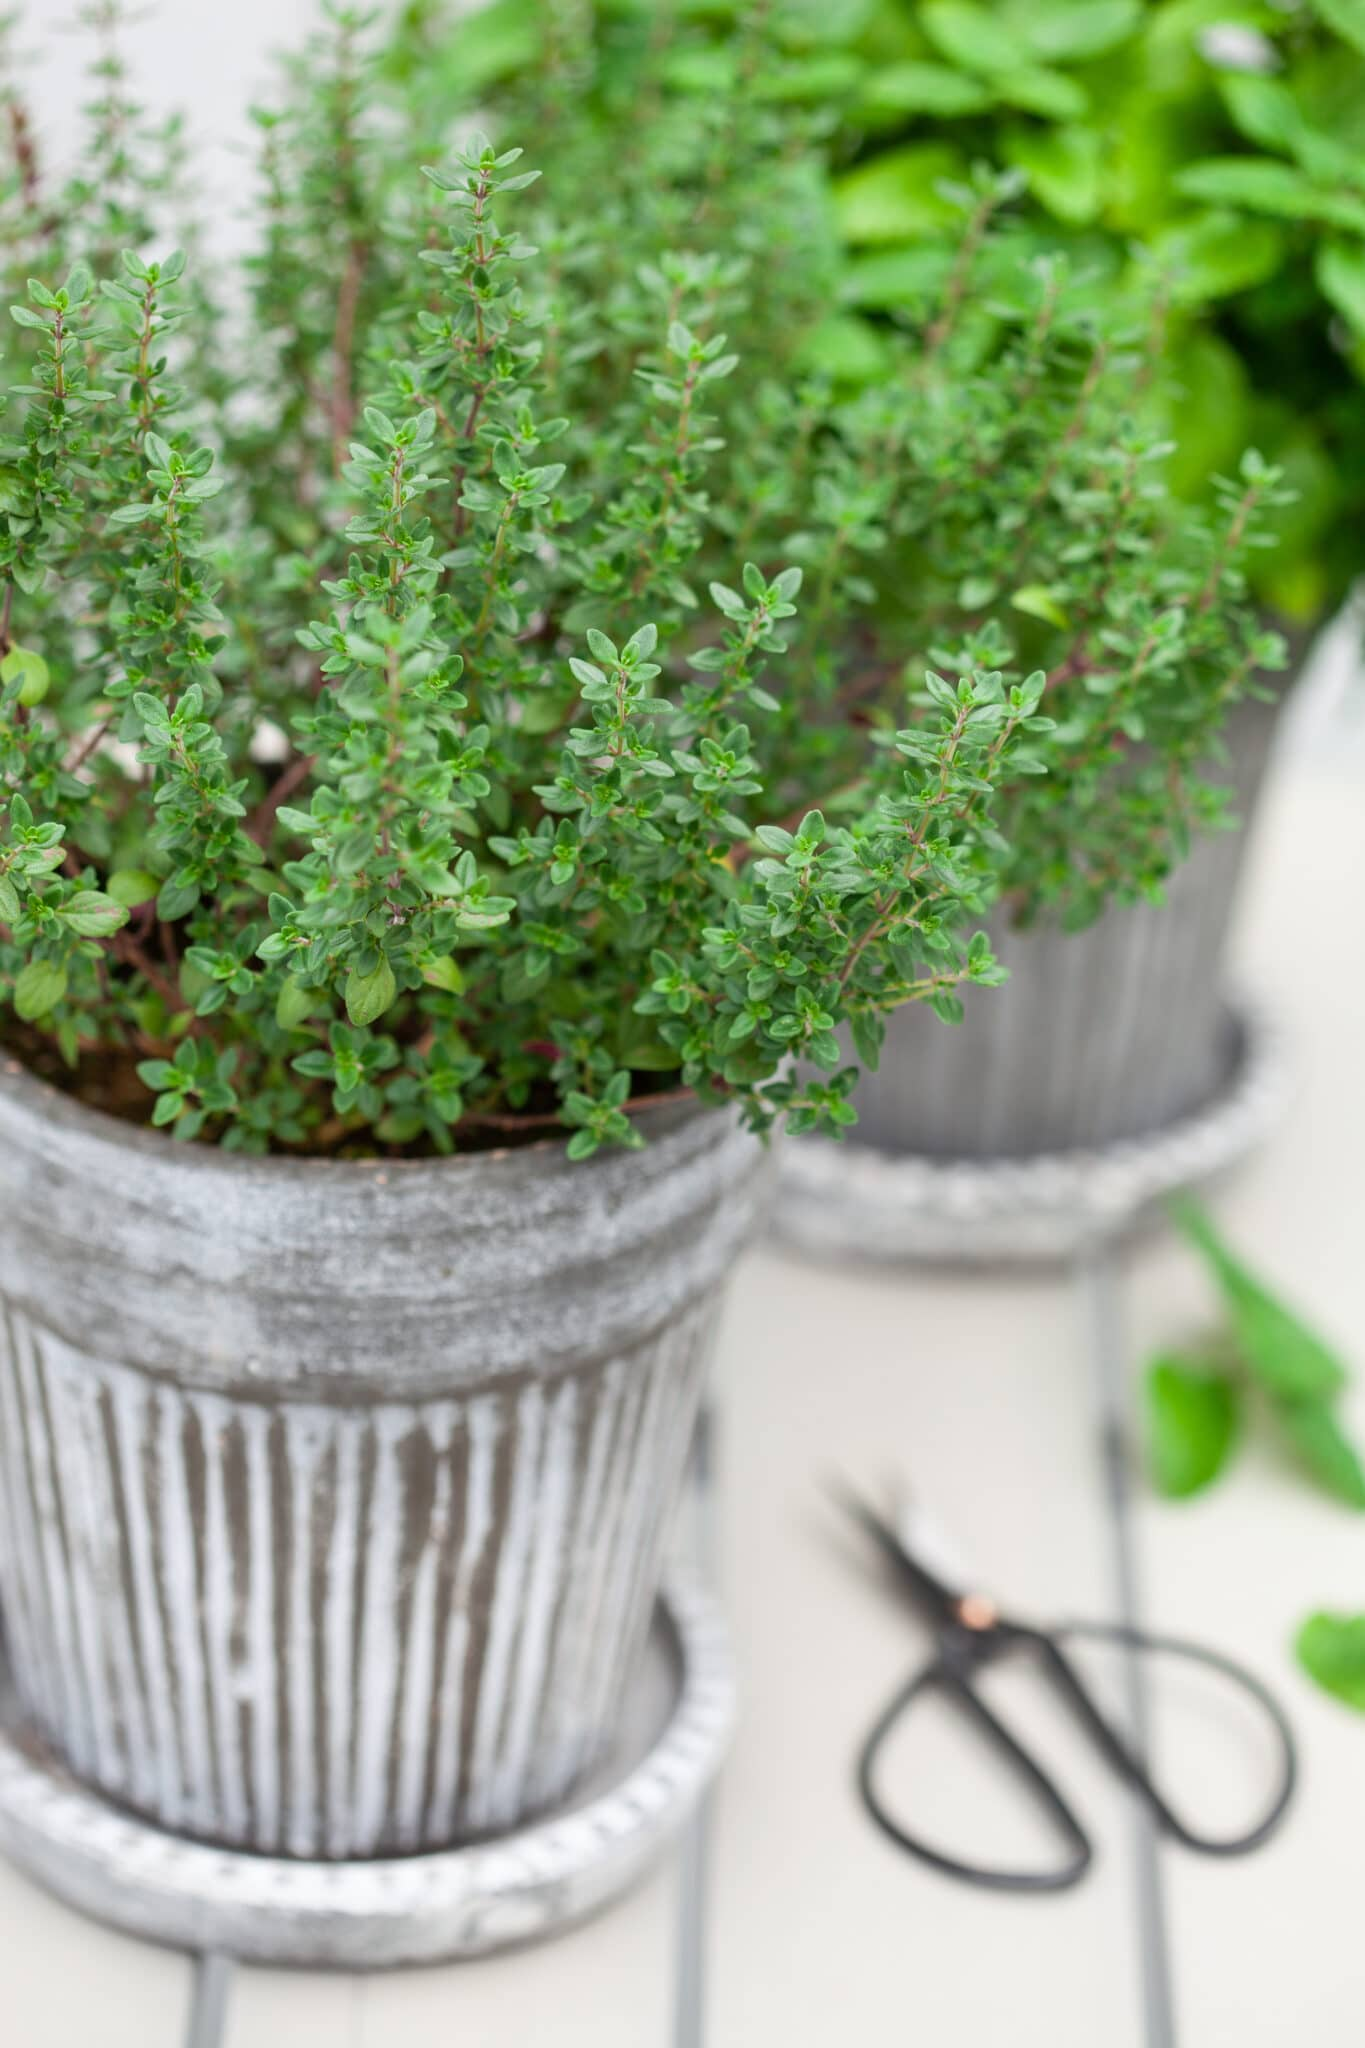 lemon balm  and thyme herb in flowerpot on a rustic white wooden tabletop.